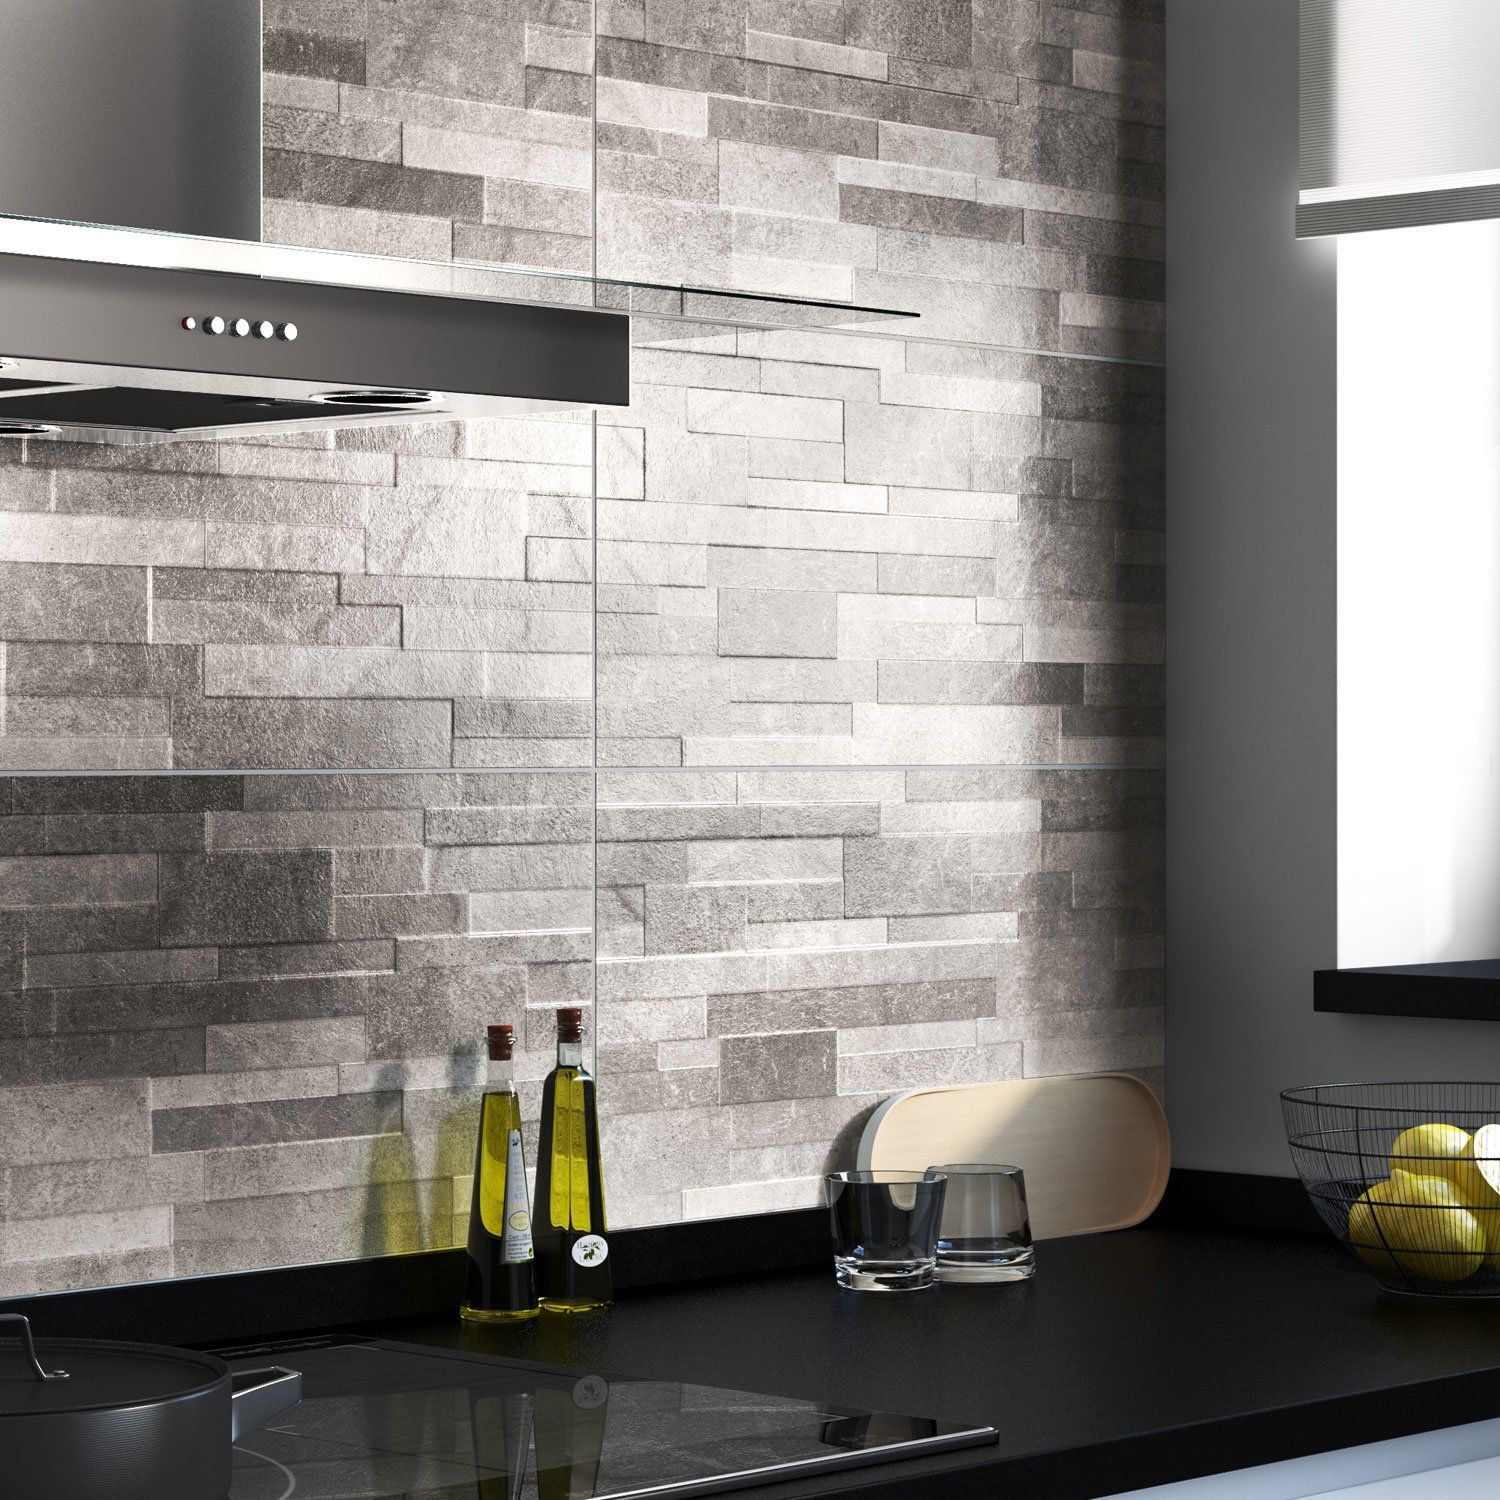 Support Pate Blanche Carrelage Mural Cuisine Mur Gris